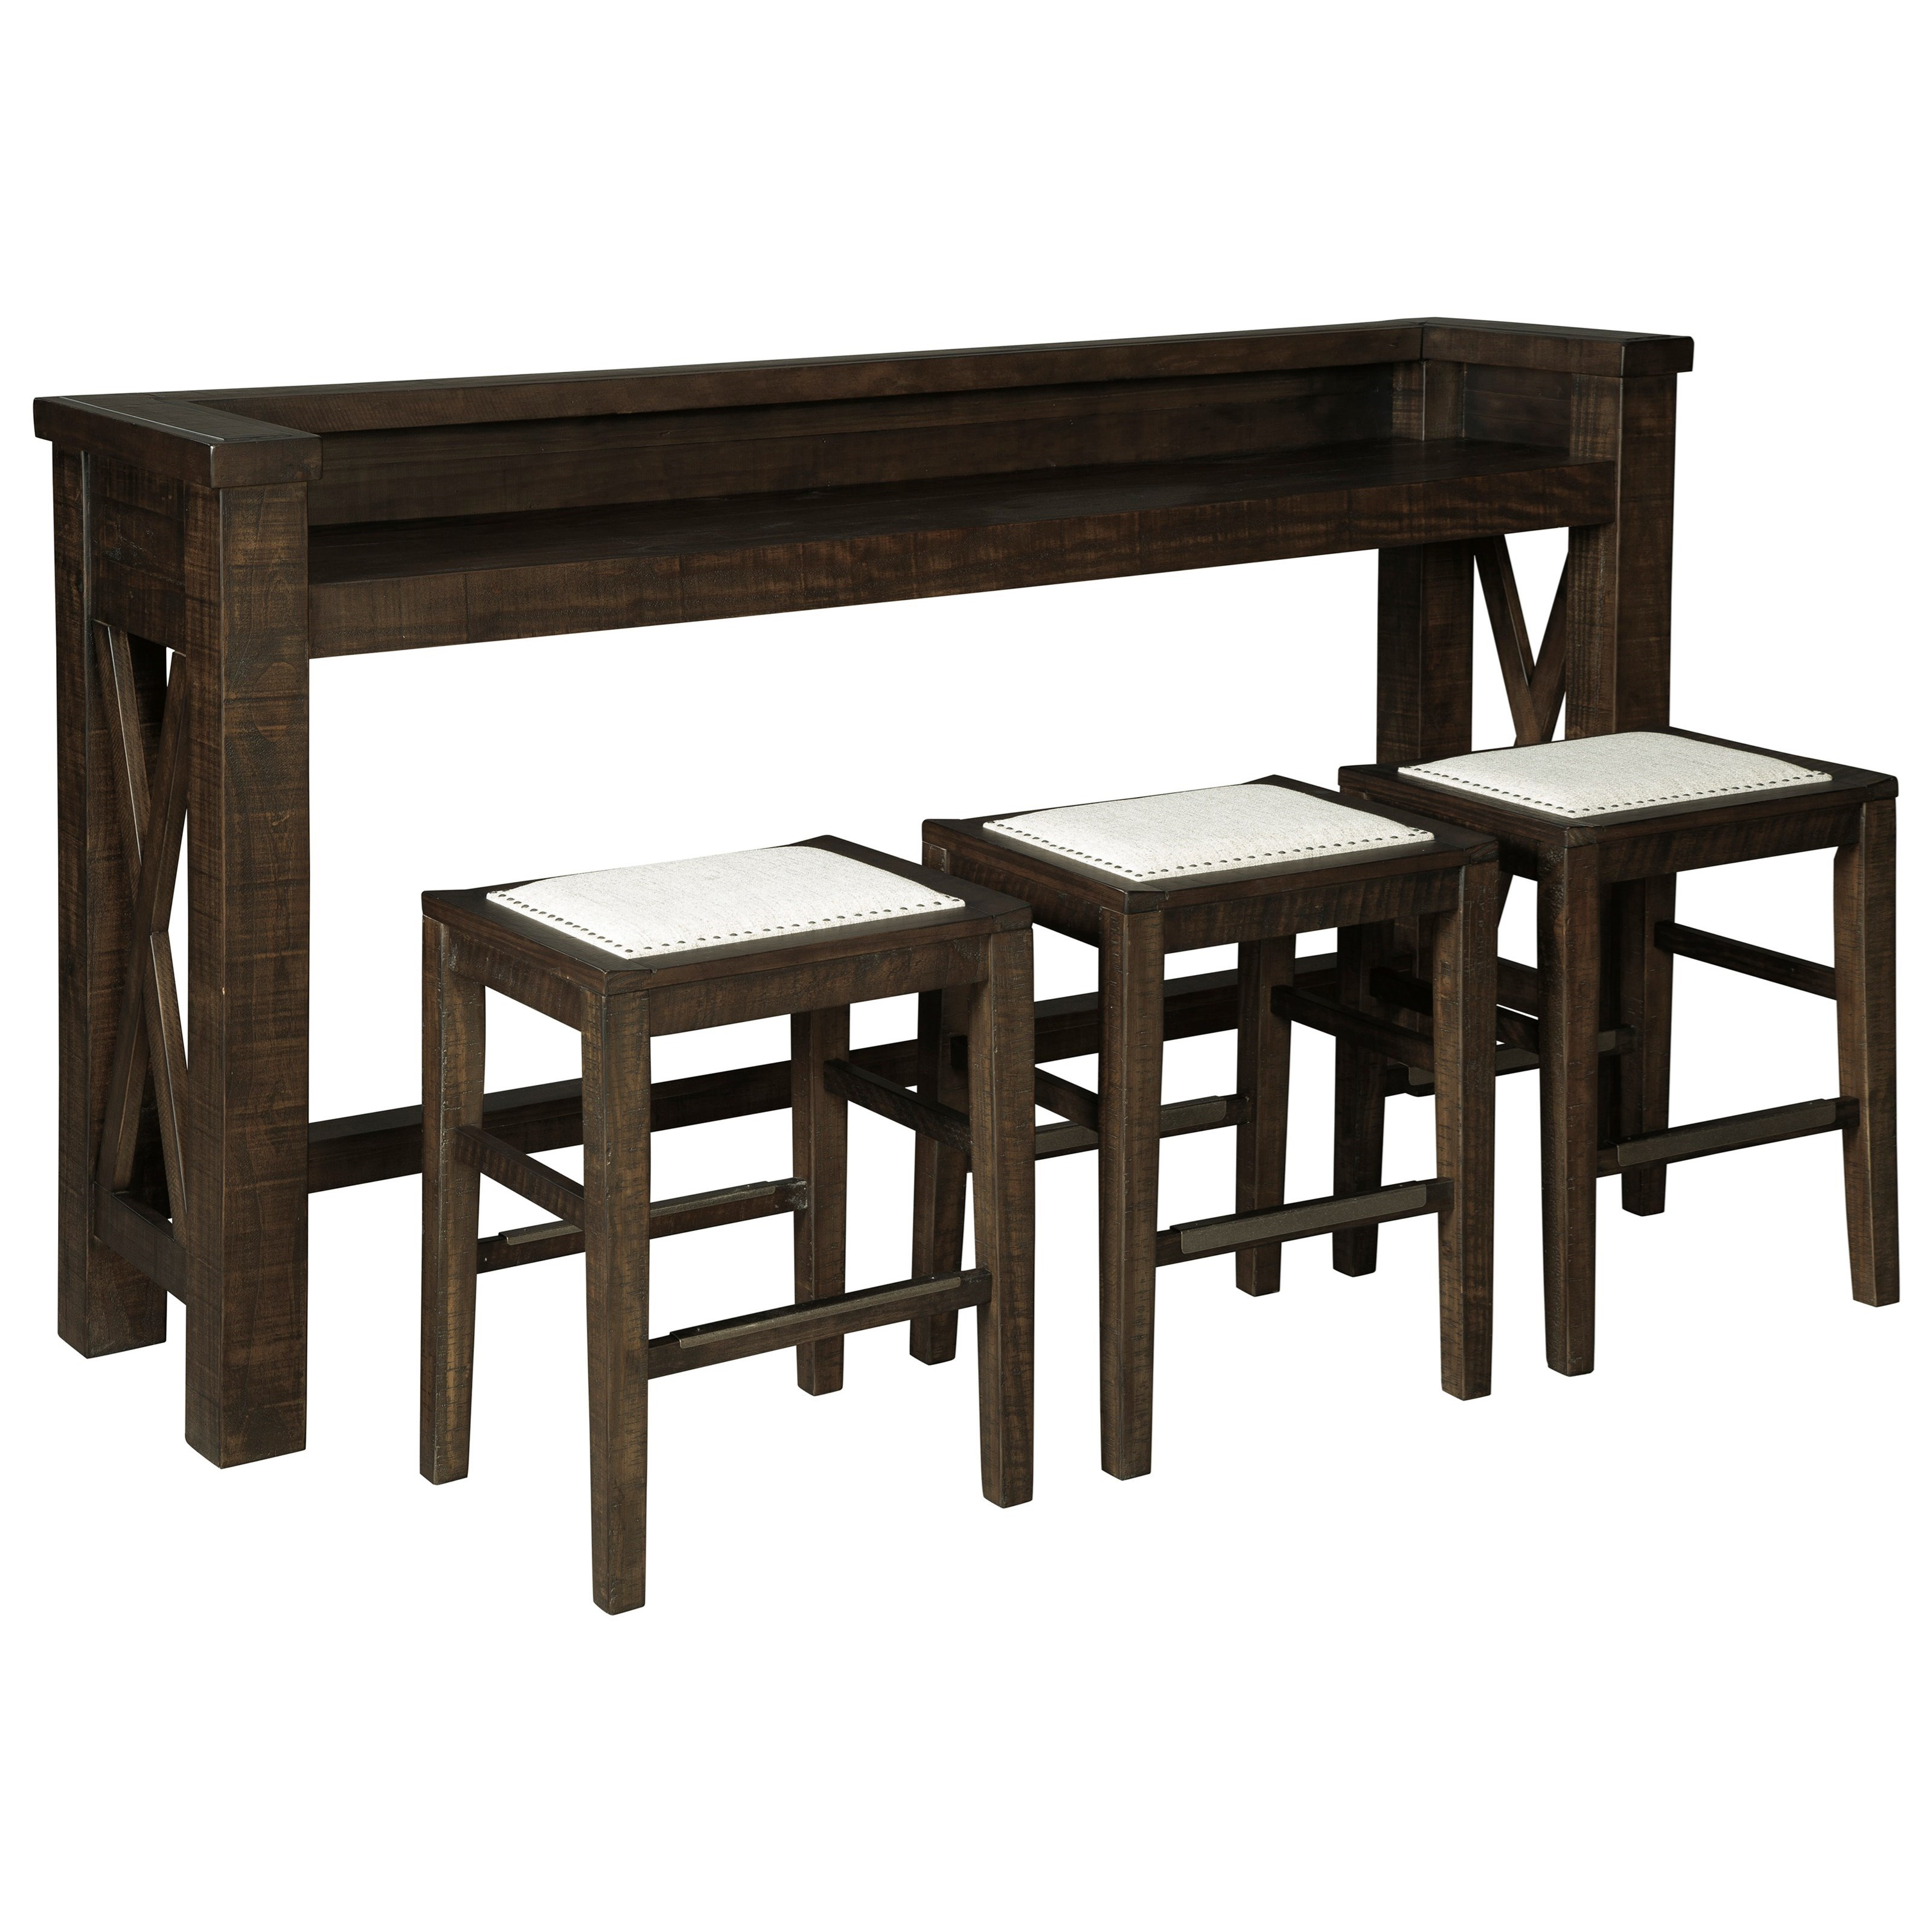 Hallishaw Counter Height Bar Table Set with 3 Stools by Ashley (Signature Design) at Johnny Janosik